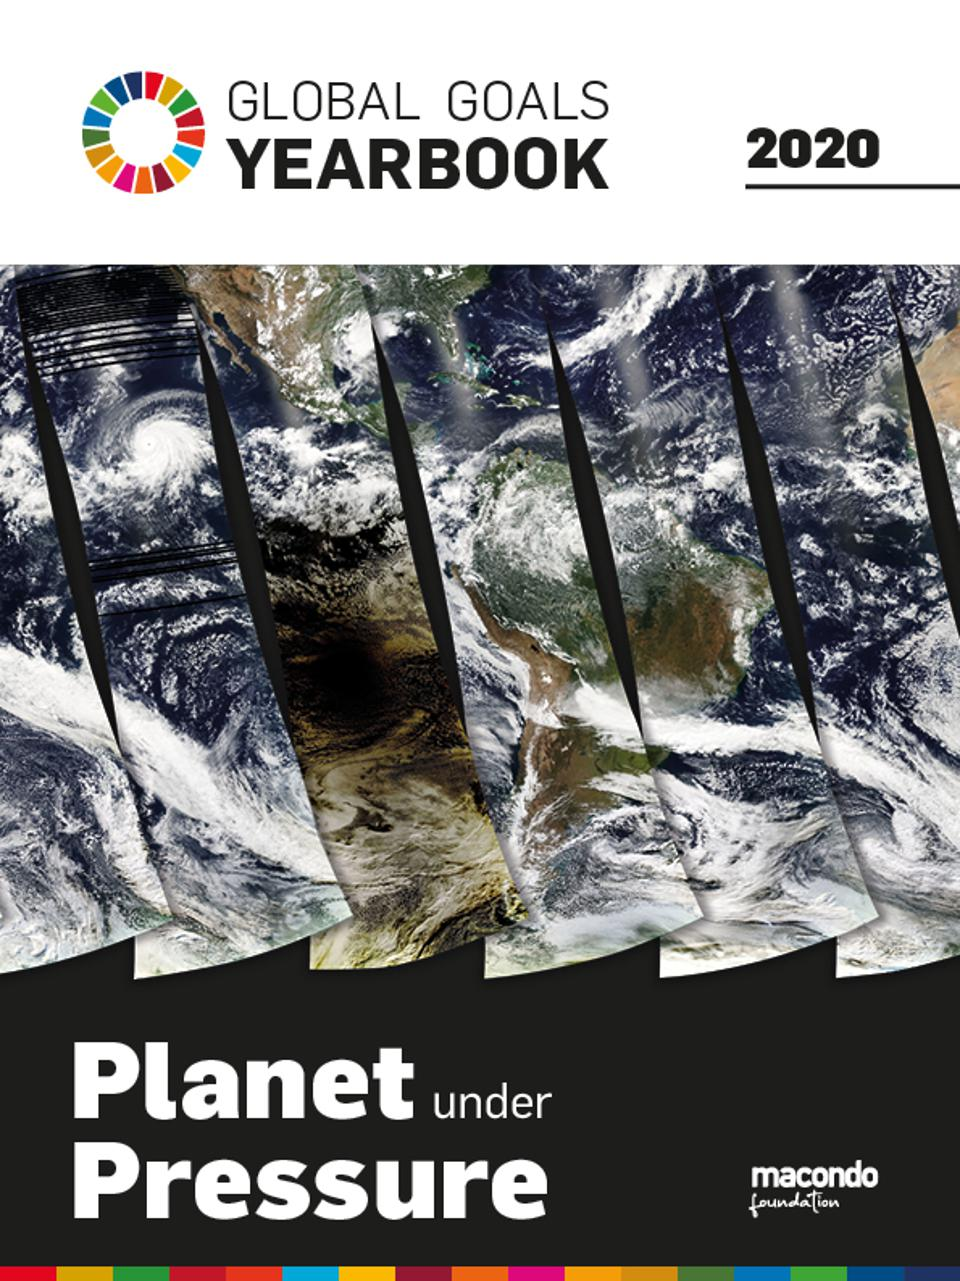 Importance of wildlife conservation in points - Planet under Pressure: Global Goals Yearbook 2020